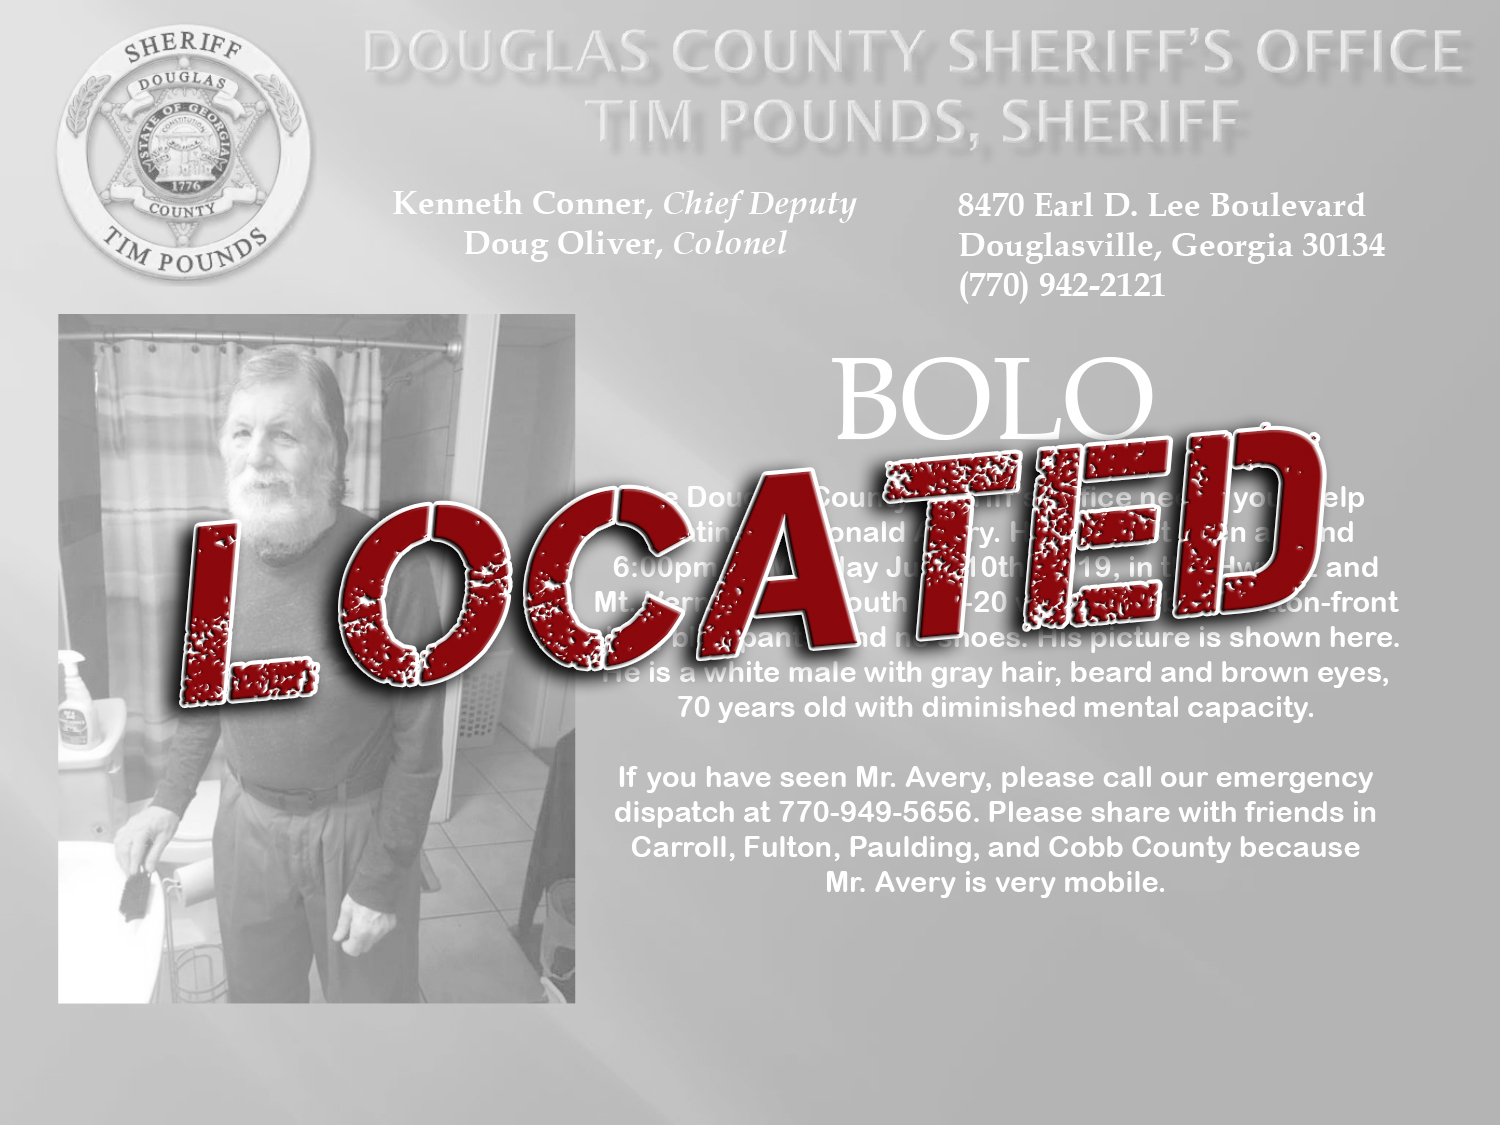 FOUND: Elderly Person Ronald Avery – Douglas County Sheriff's Office